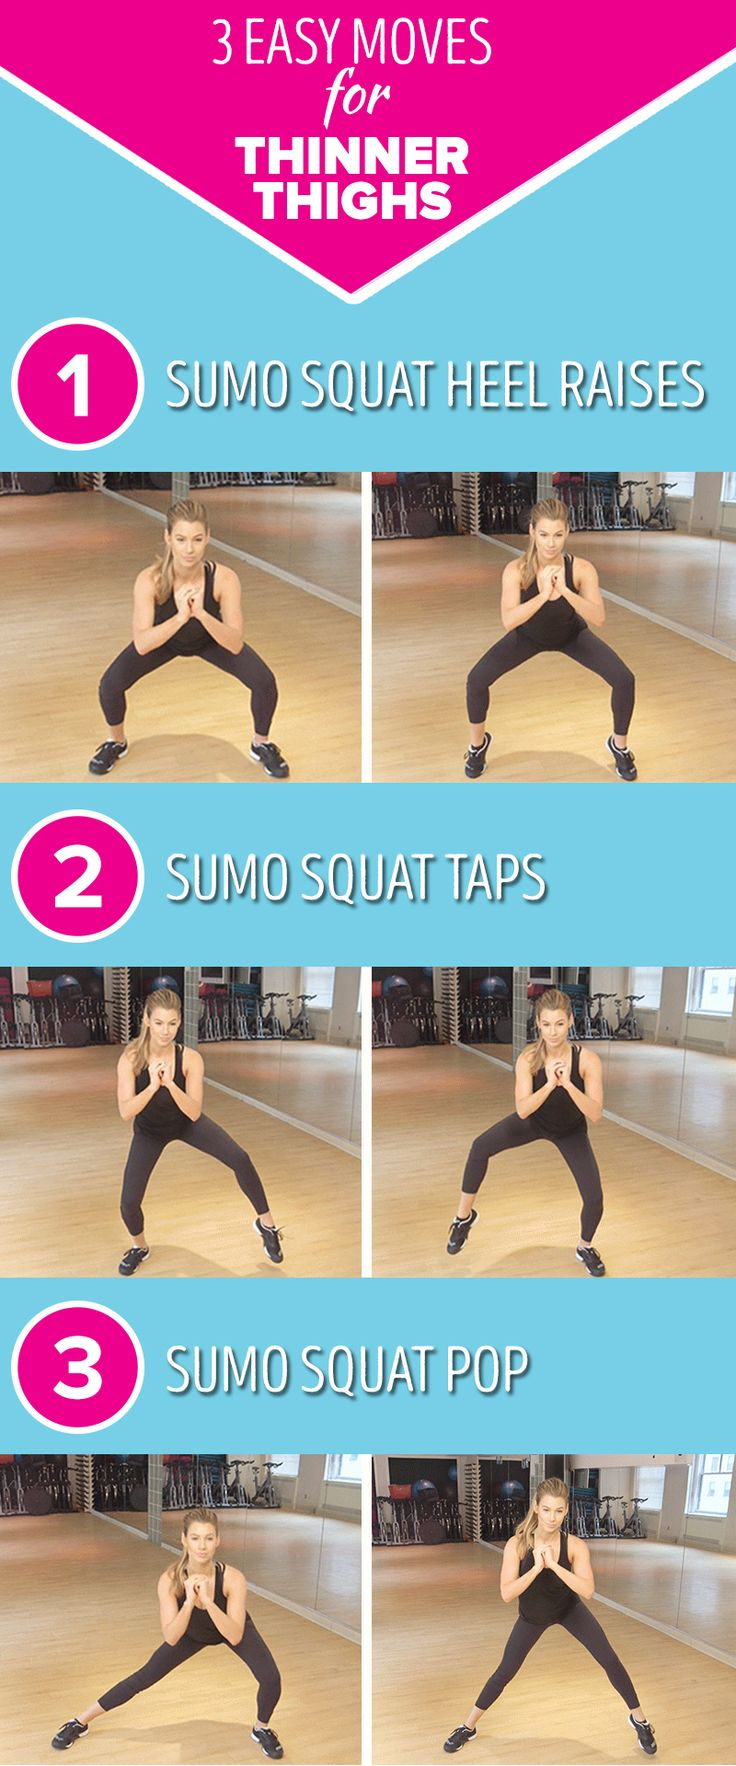 Tone your legs with these three easy exercises. This workout routine will help you get thinner thighs fast.